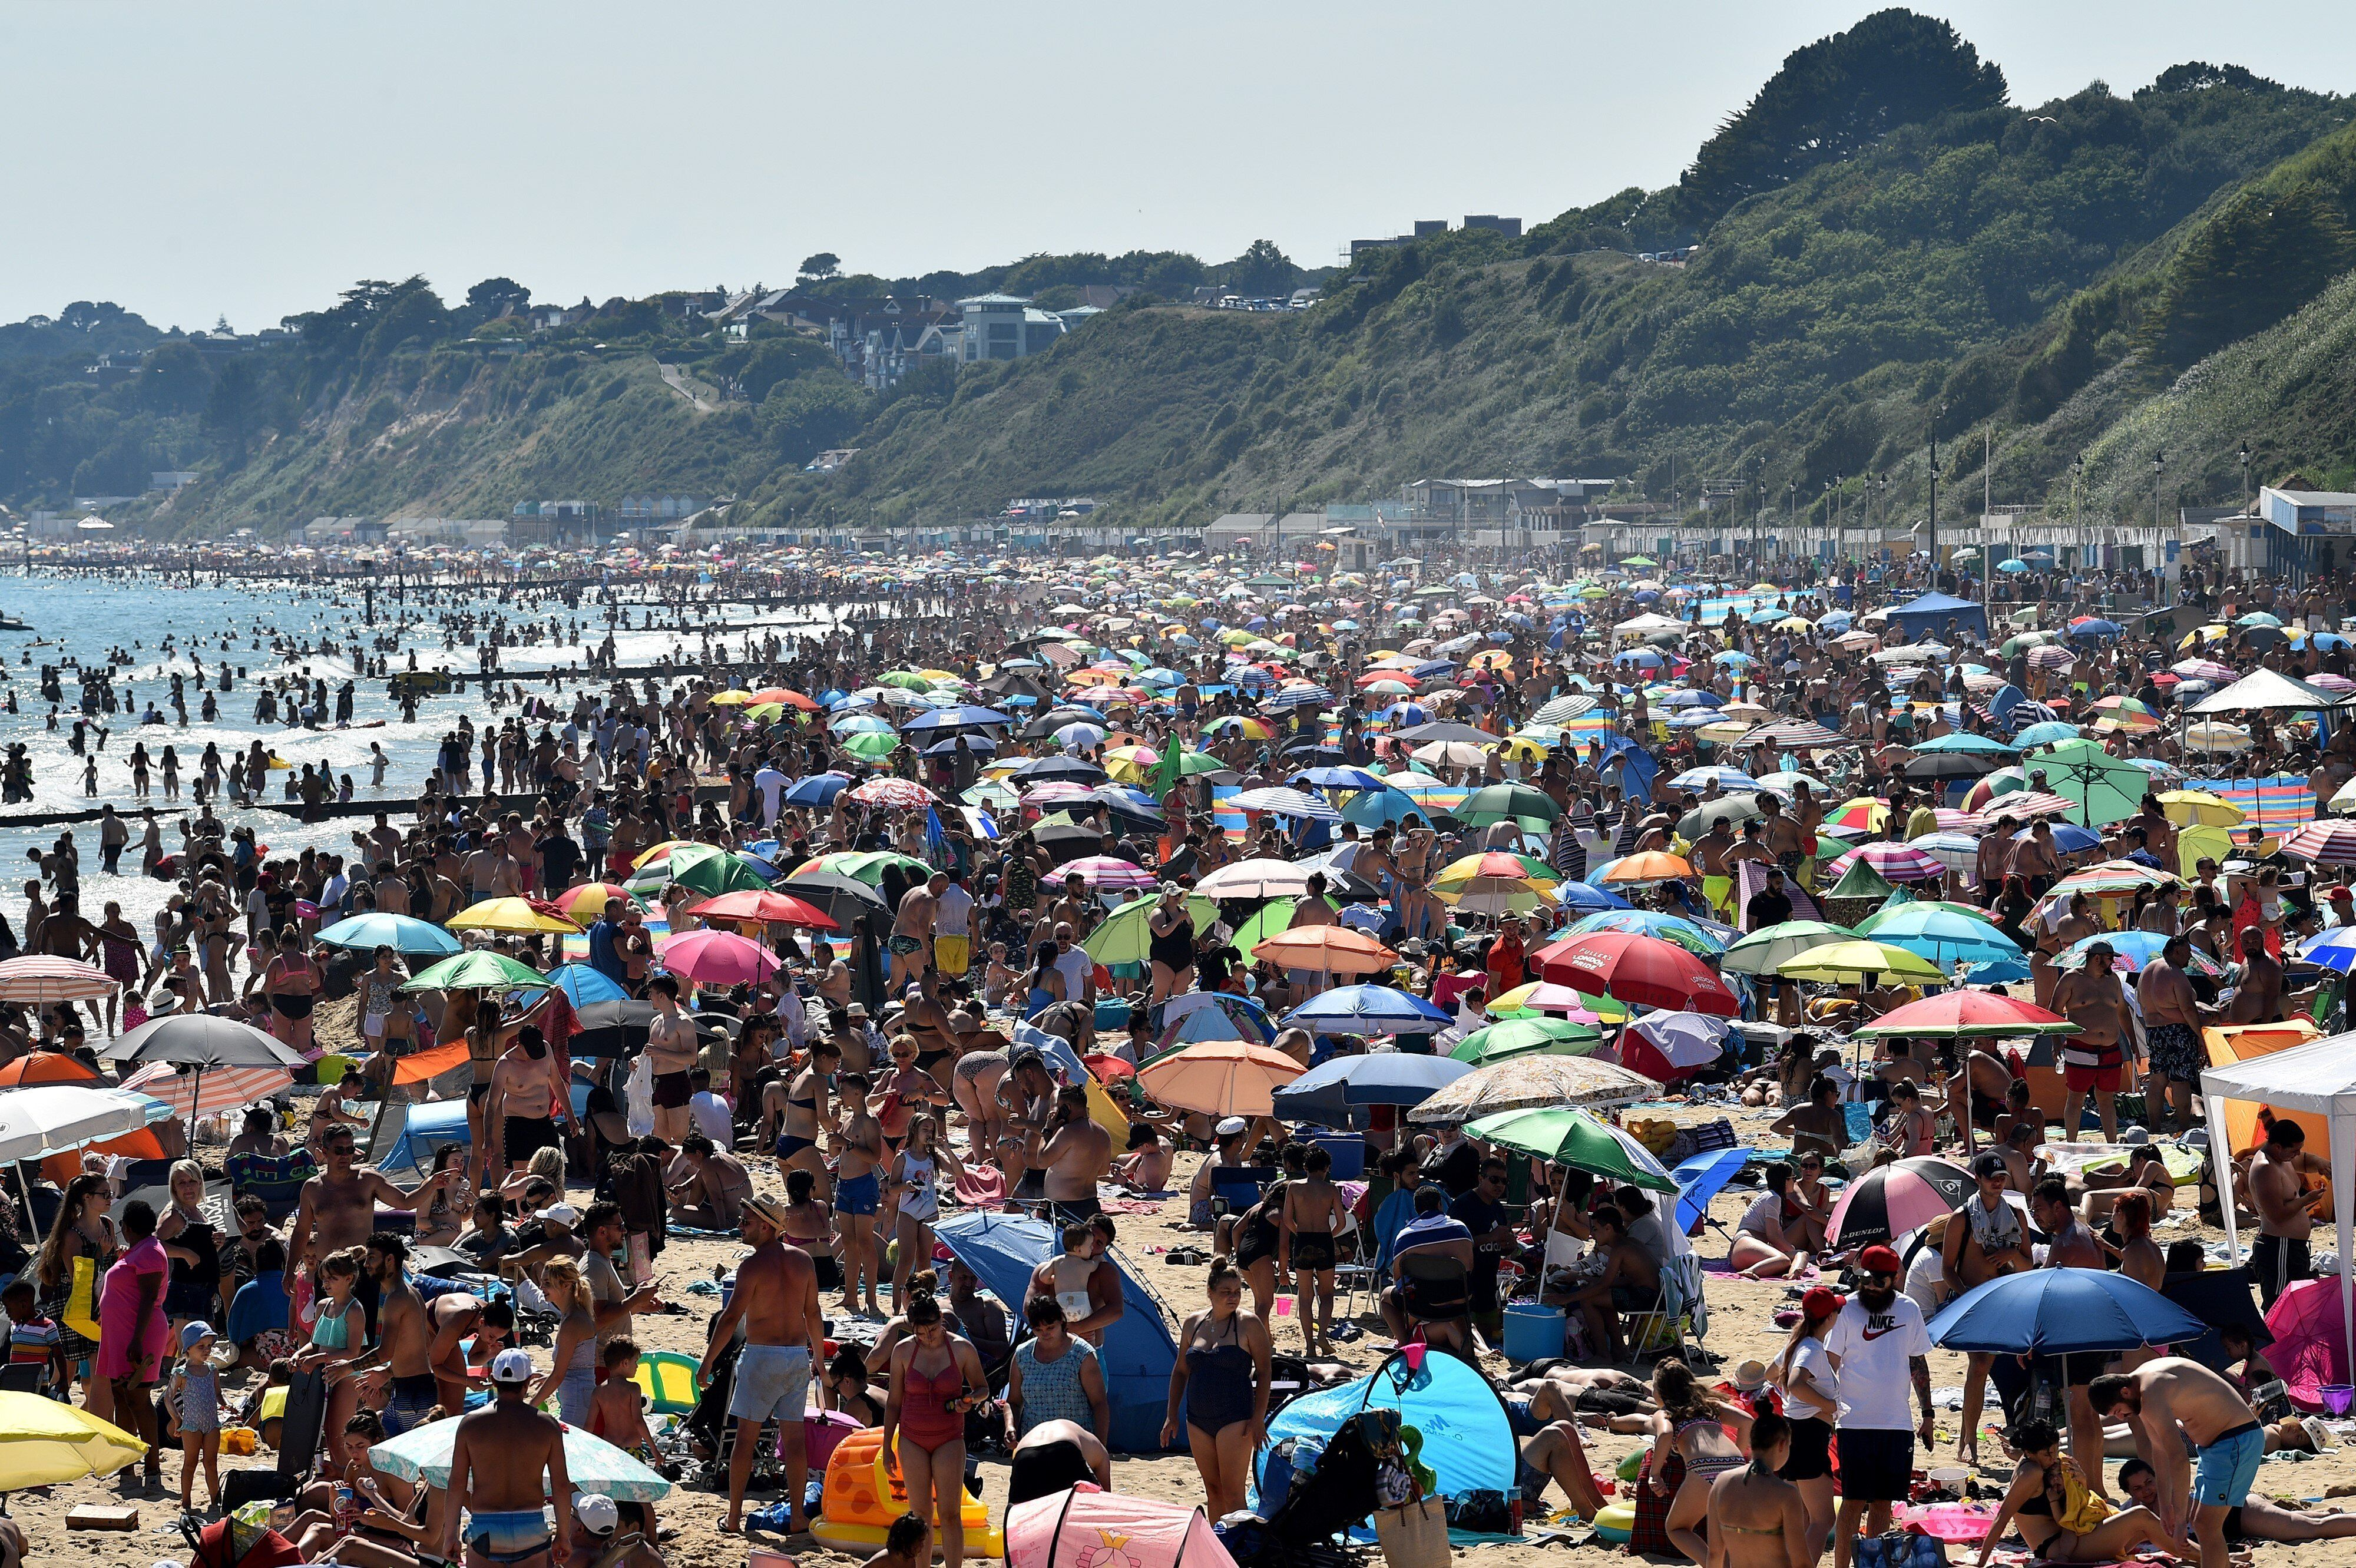 Beachgoers enjoy the sunshine as they sunbathe and swim on Bournemouth Beach in southern England on June 25.